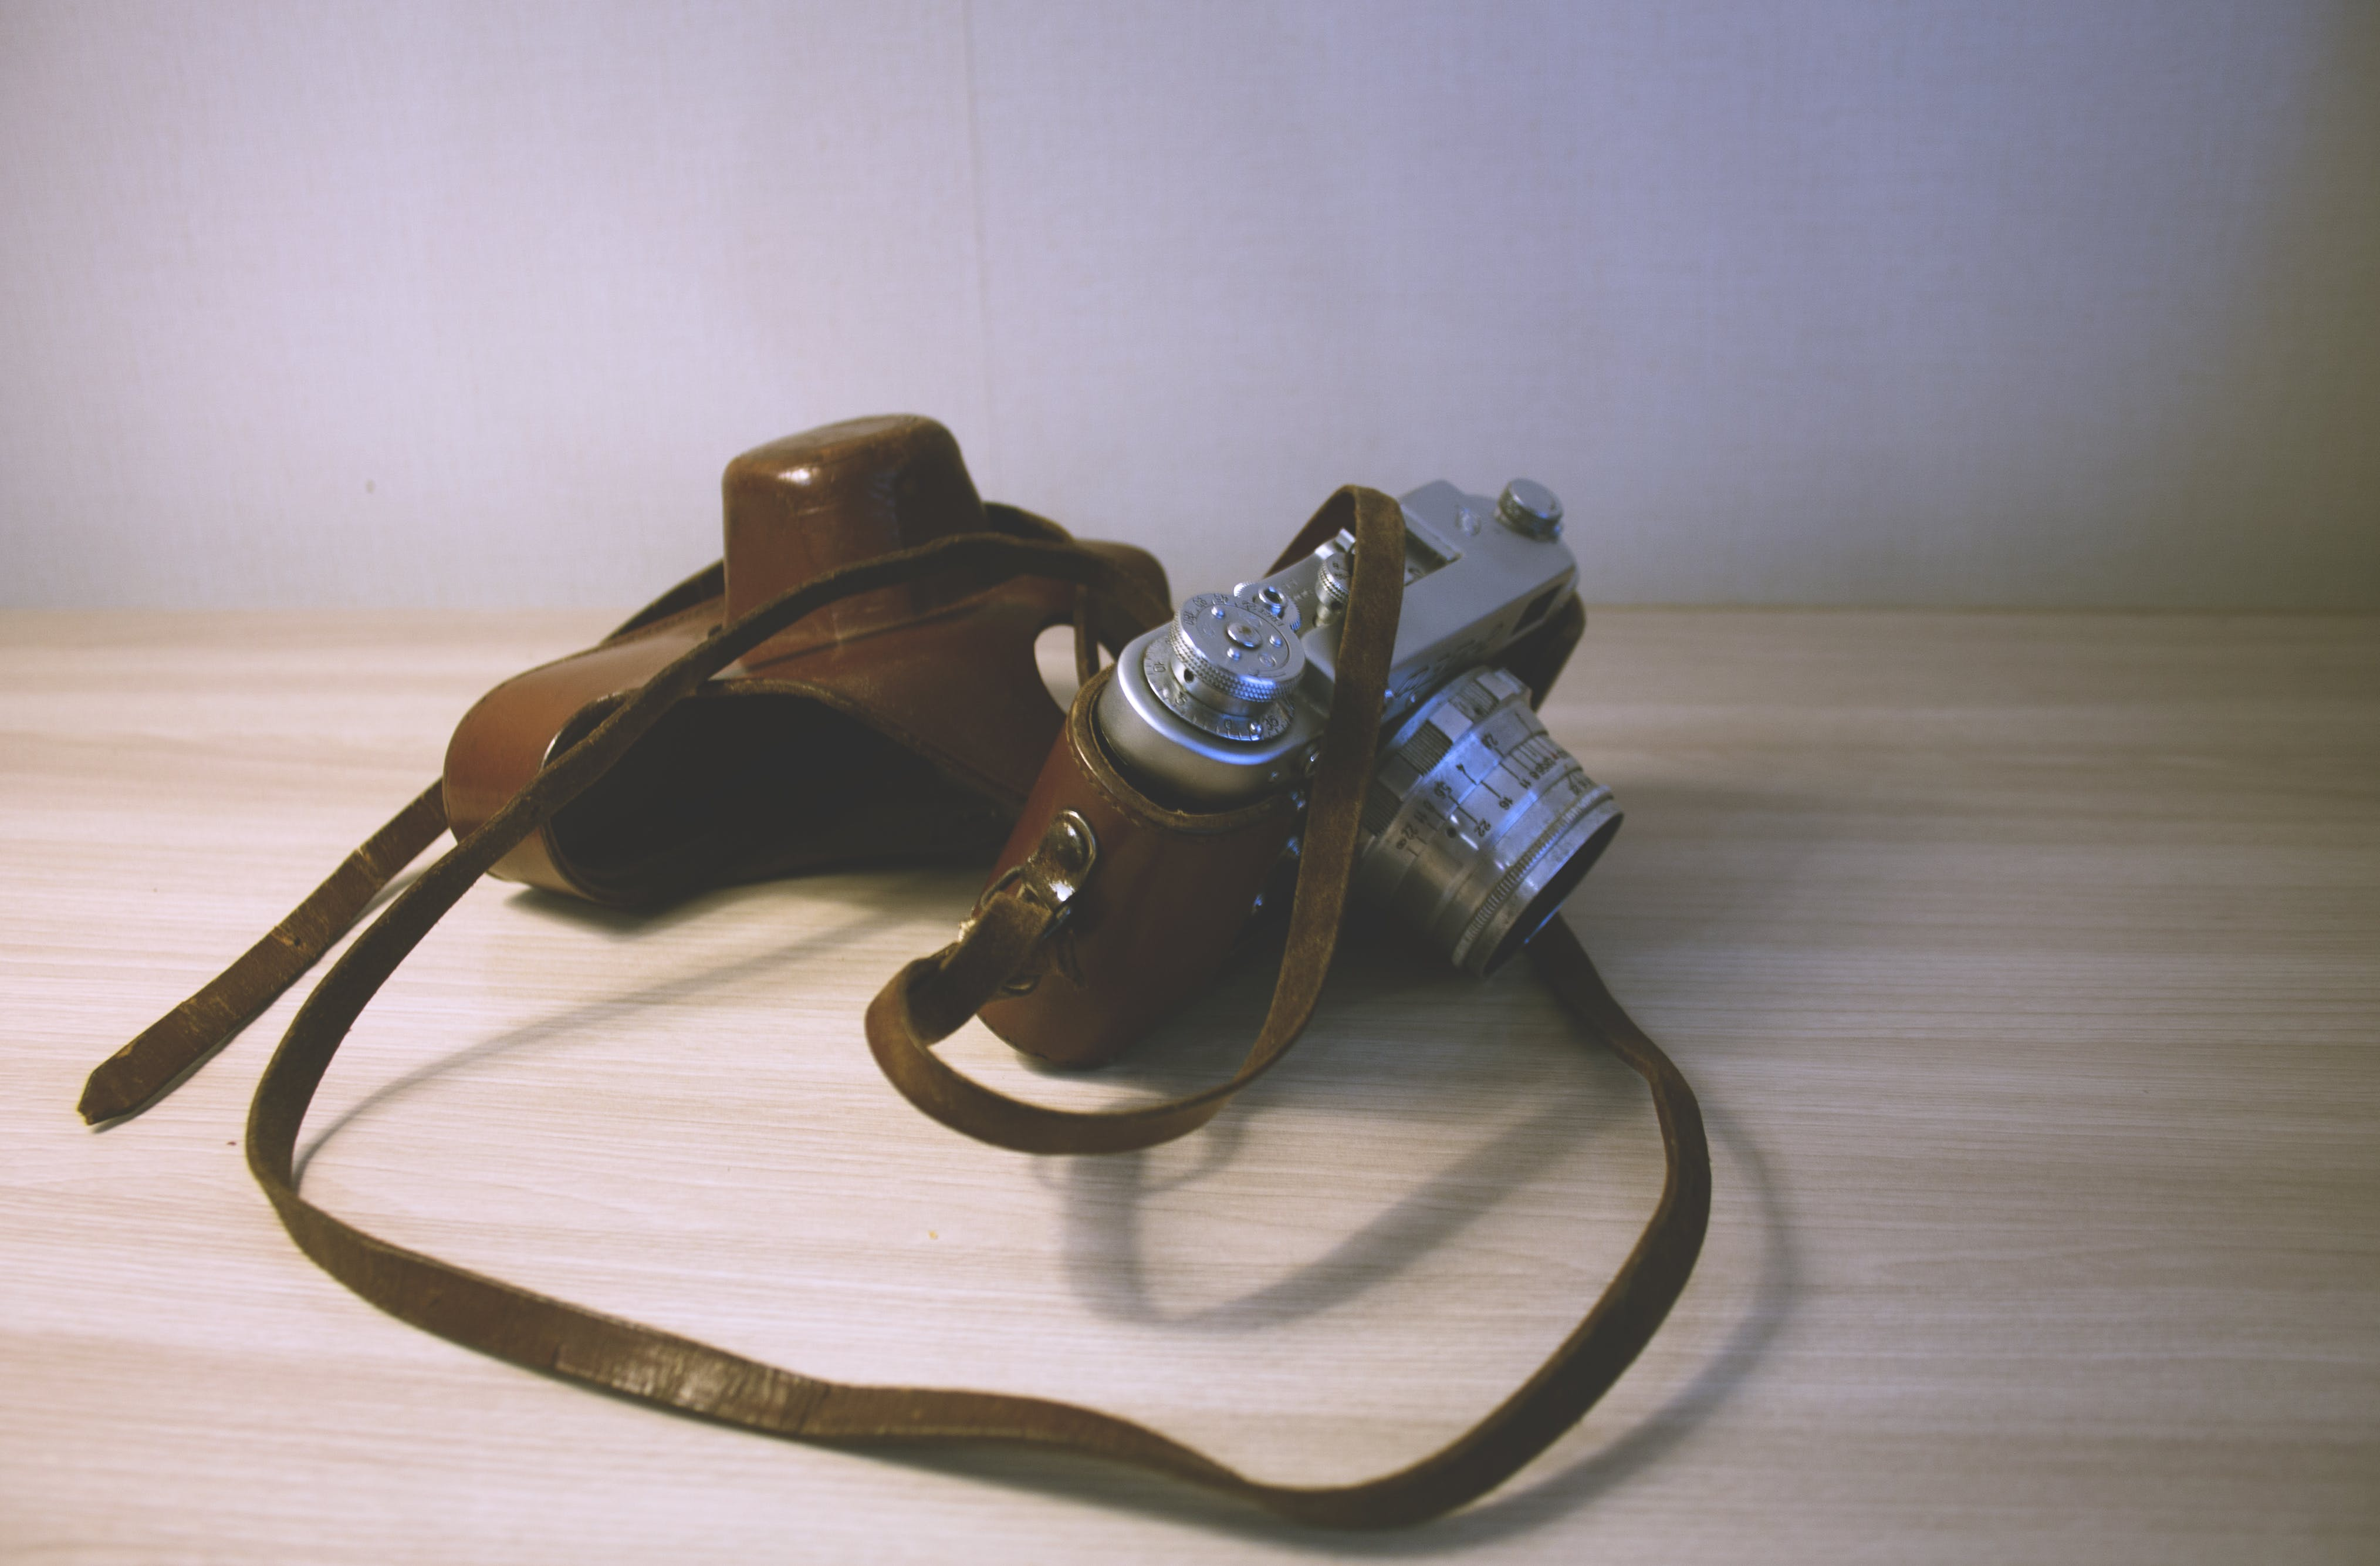 Free stock photo of analog camera, Analogue, camera, leather